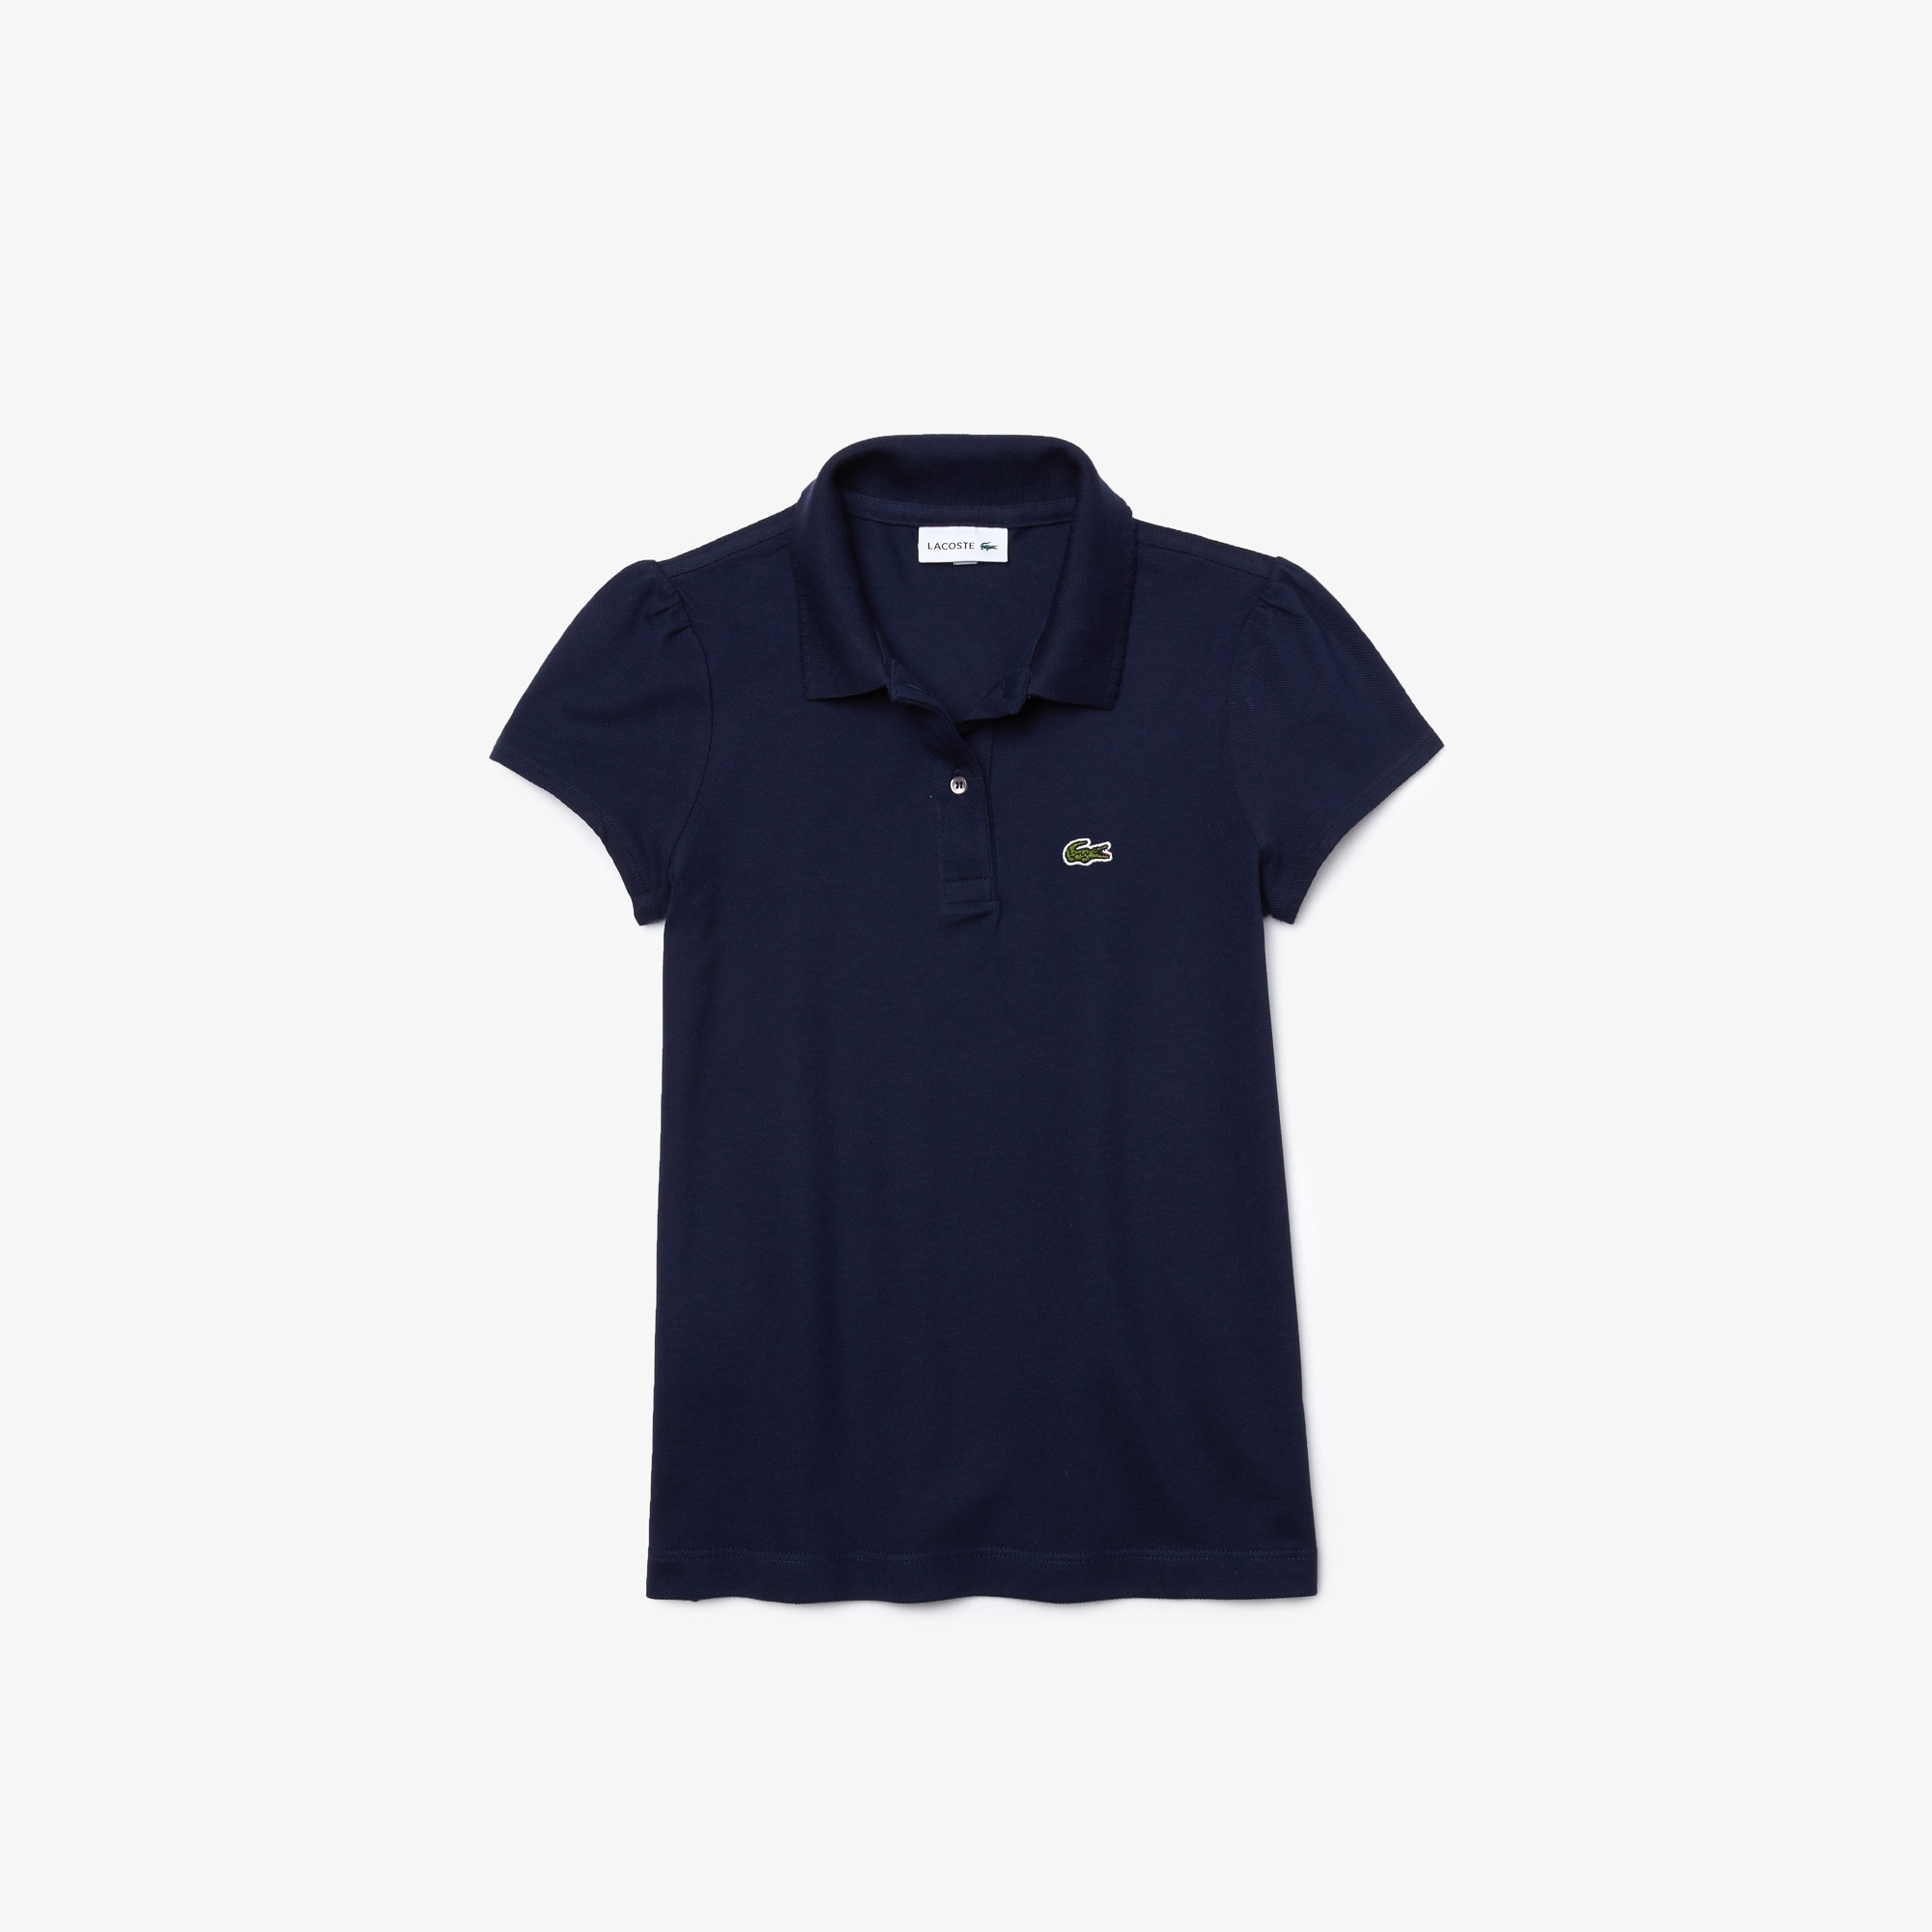 99418e9f0a Tous les polos | Collection Polo | LACOSTE